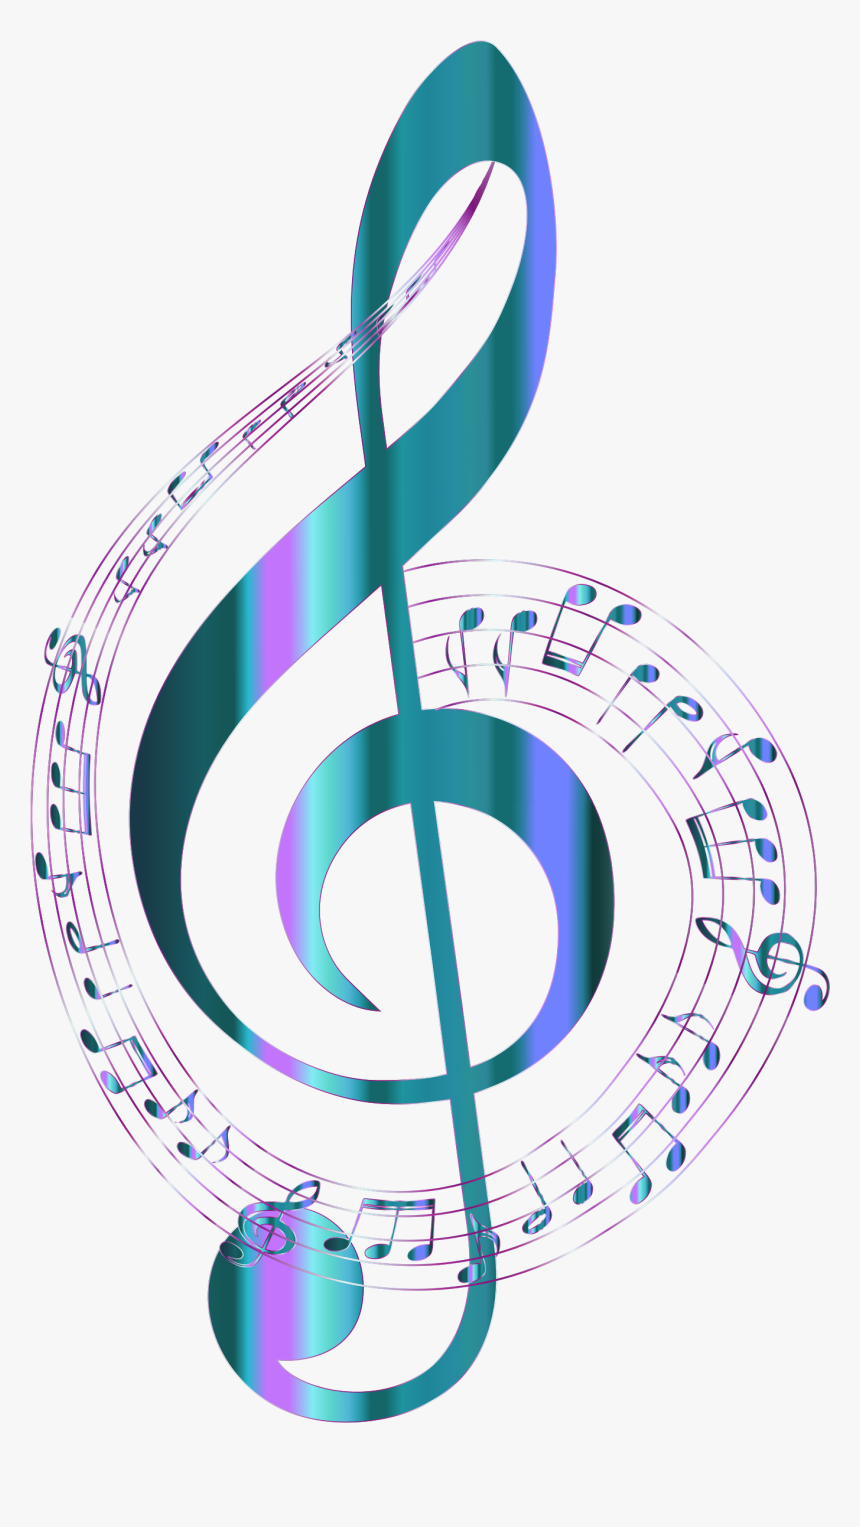 Music Clip Art Clear Background Colorful Transparent Background Musical Notes Hd Png Download Transparent Png Image Pngitem